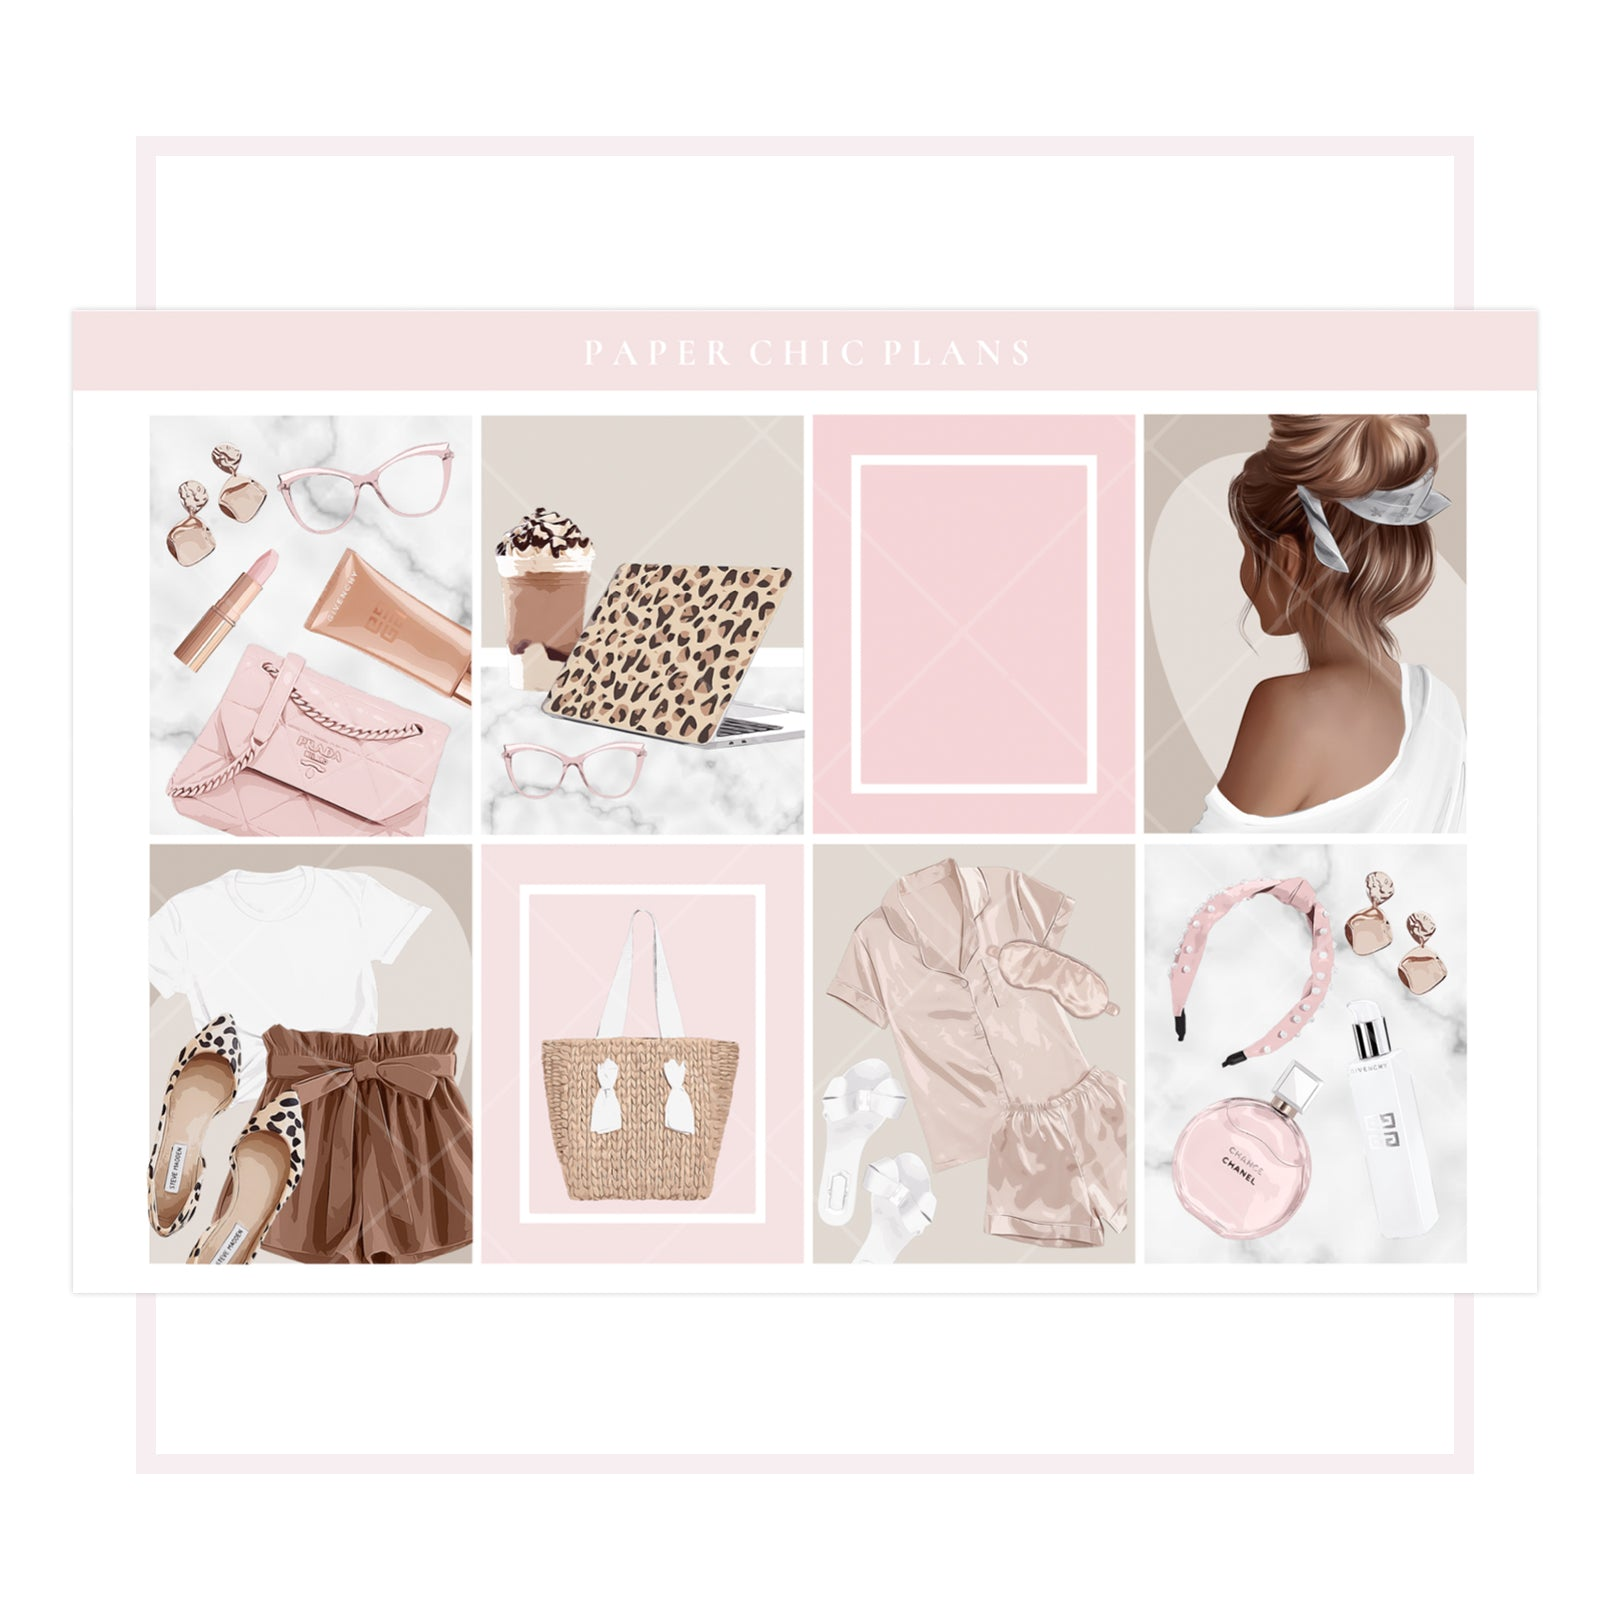 Rosé All Day // Full Kit - Paper Chic Plans